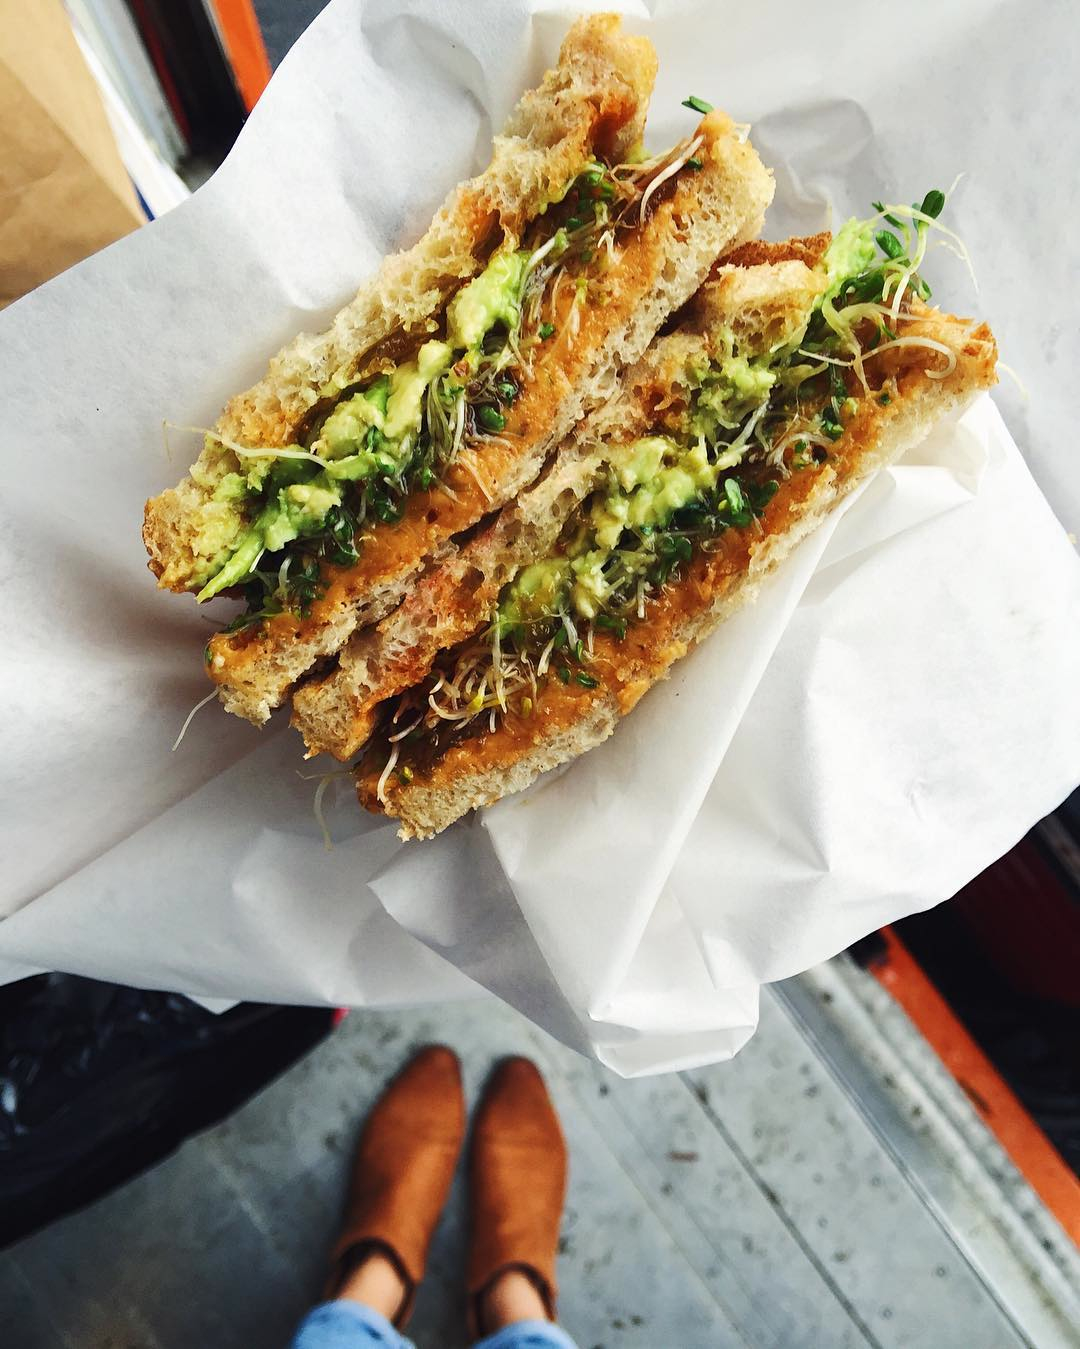 Savory Sandwich - Photo credit: @pbjellydeli Instagram